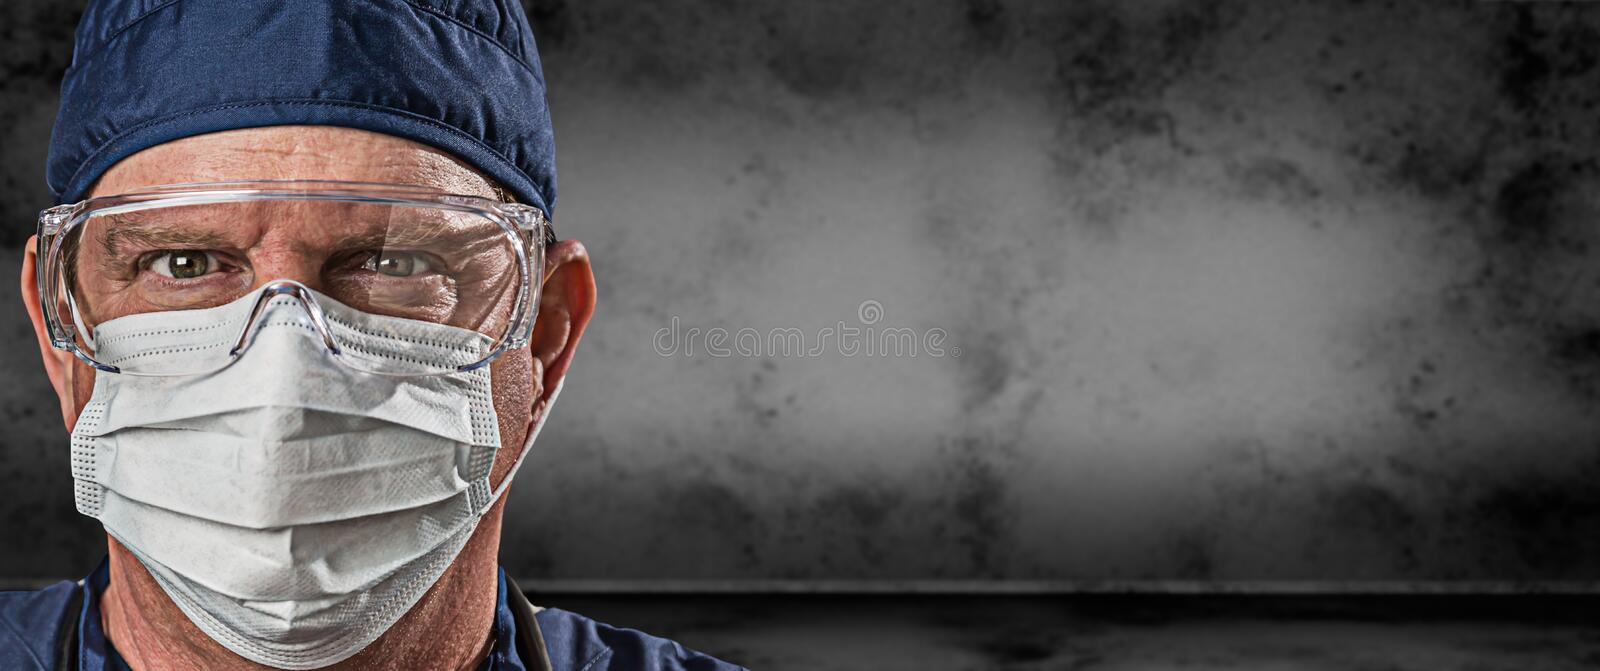 Male Doctor or Nurse Wearing Goggles and Face Mask Against Grungy Dark Background Banner stock photography